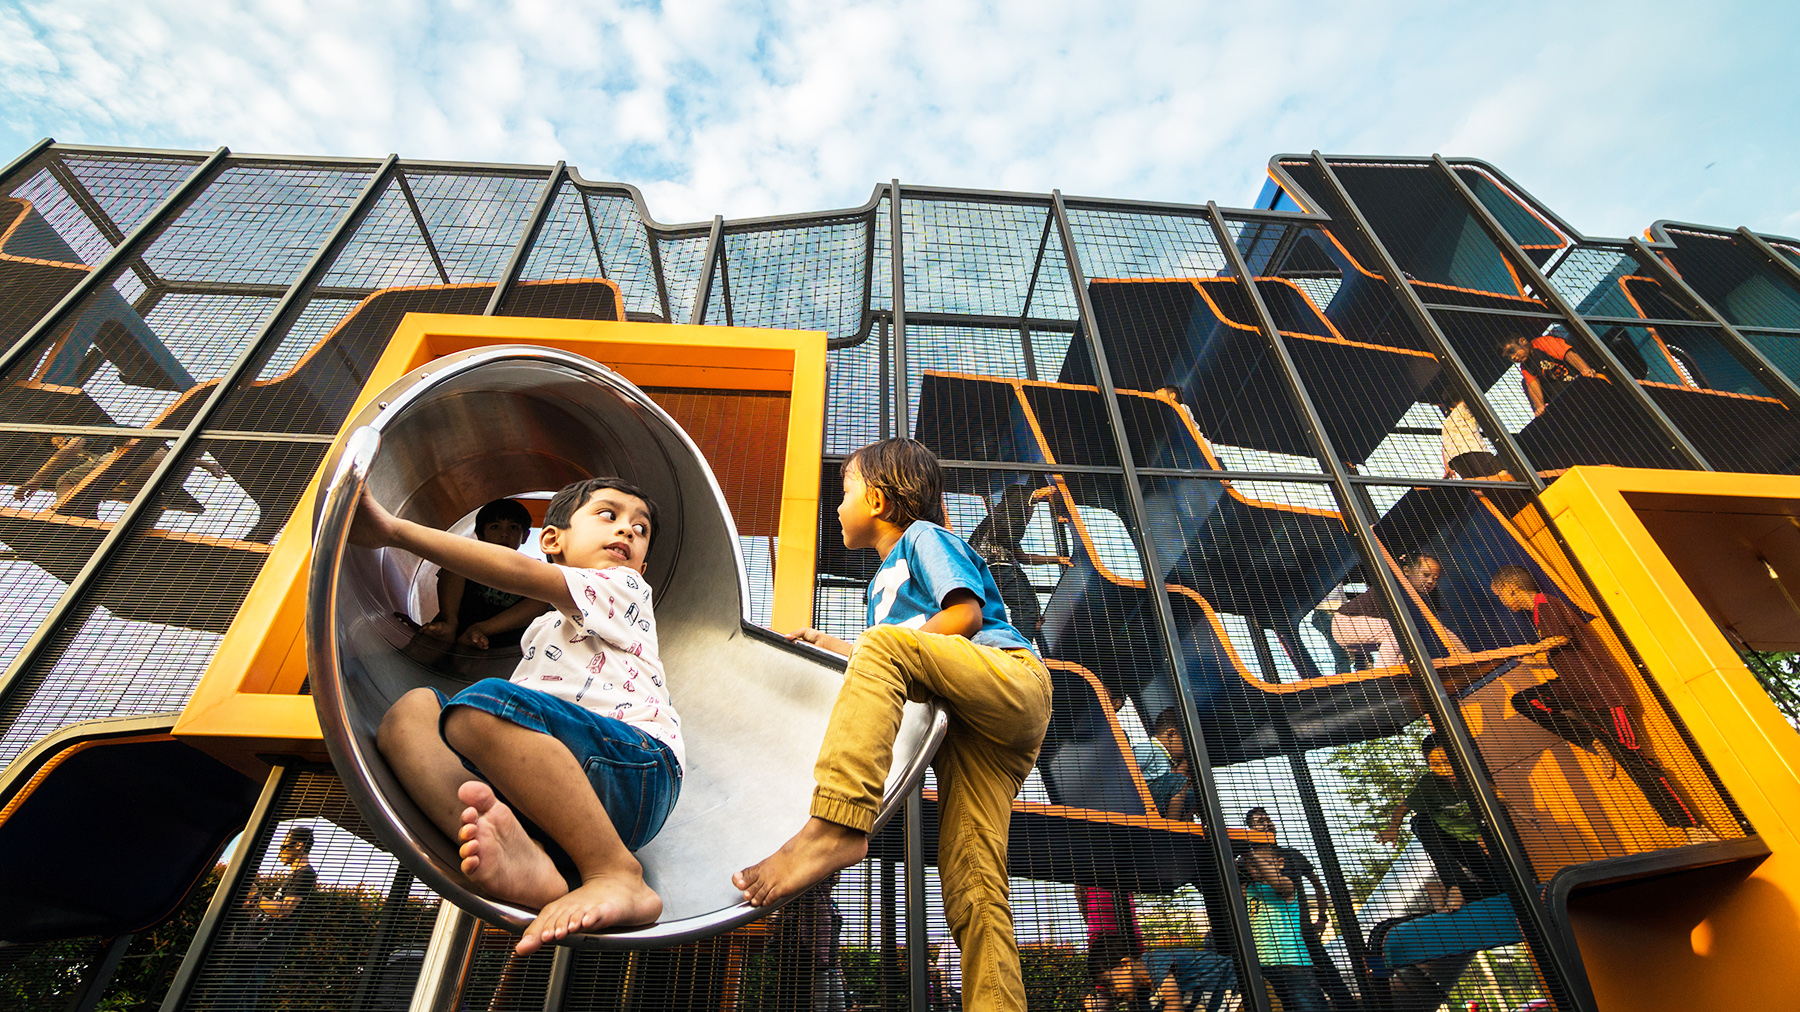 Vertical-Playground-Eco-Ardence-home-page.jpg